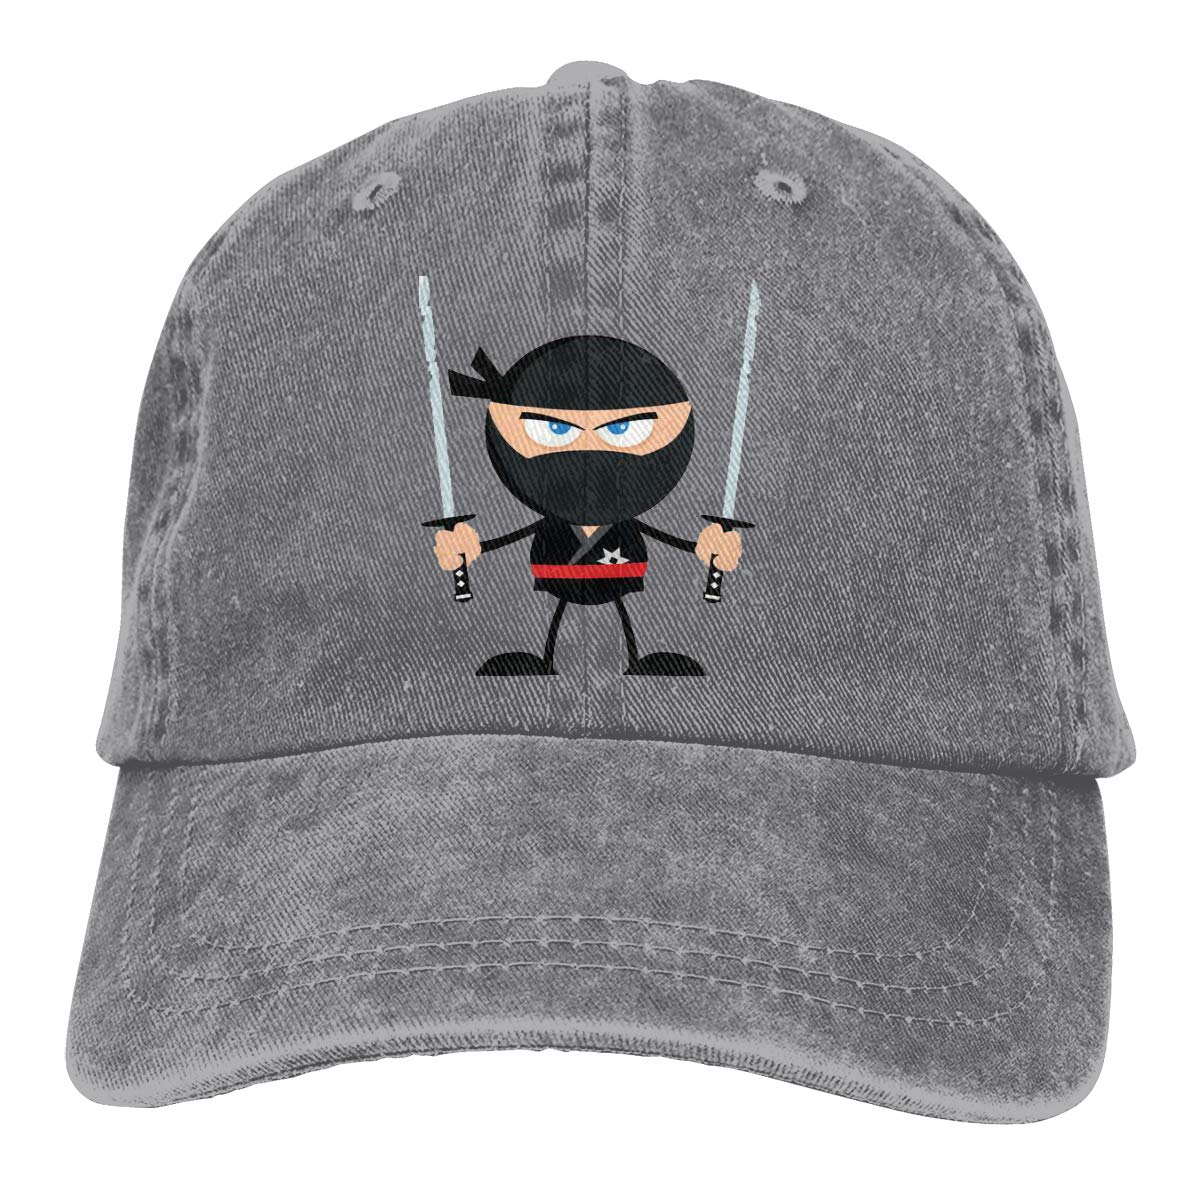 Unisex Vintage Washed Baseball Cap Angry Ninja Warrior with ...